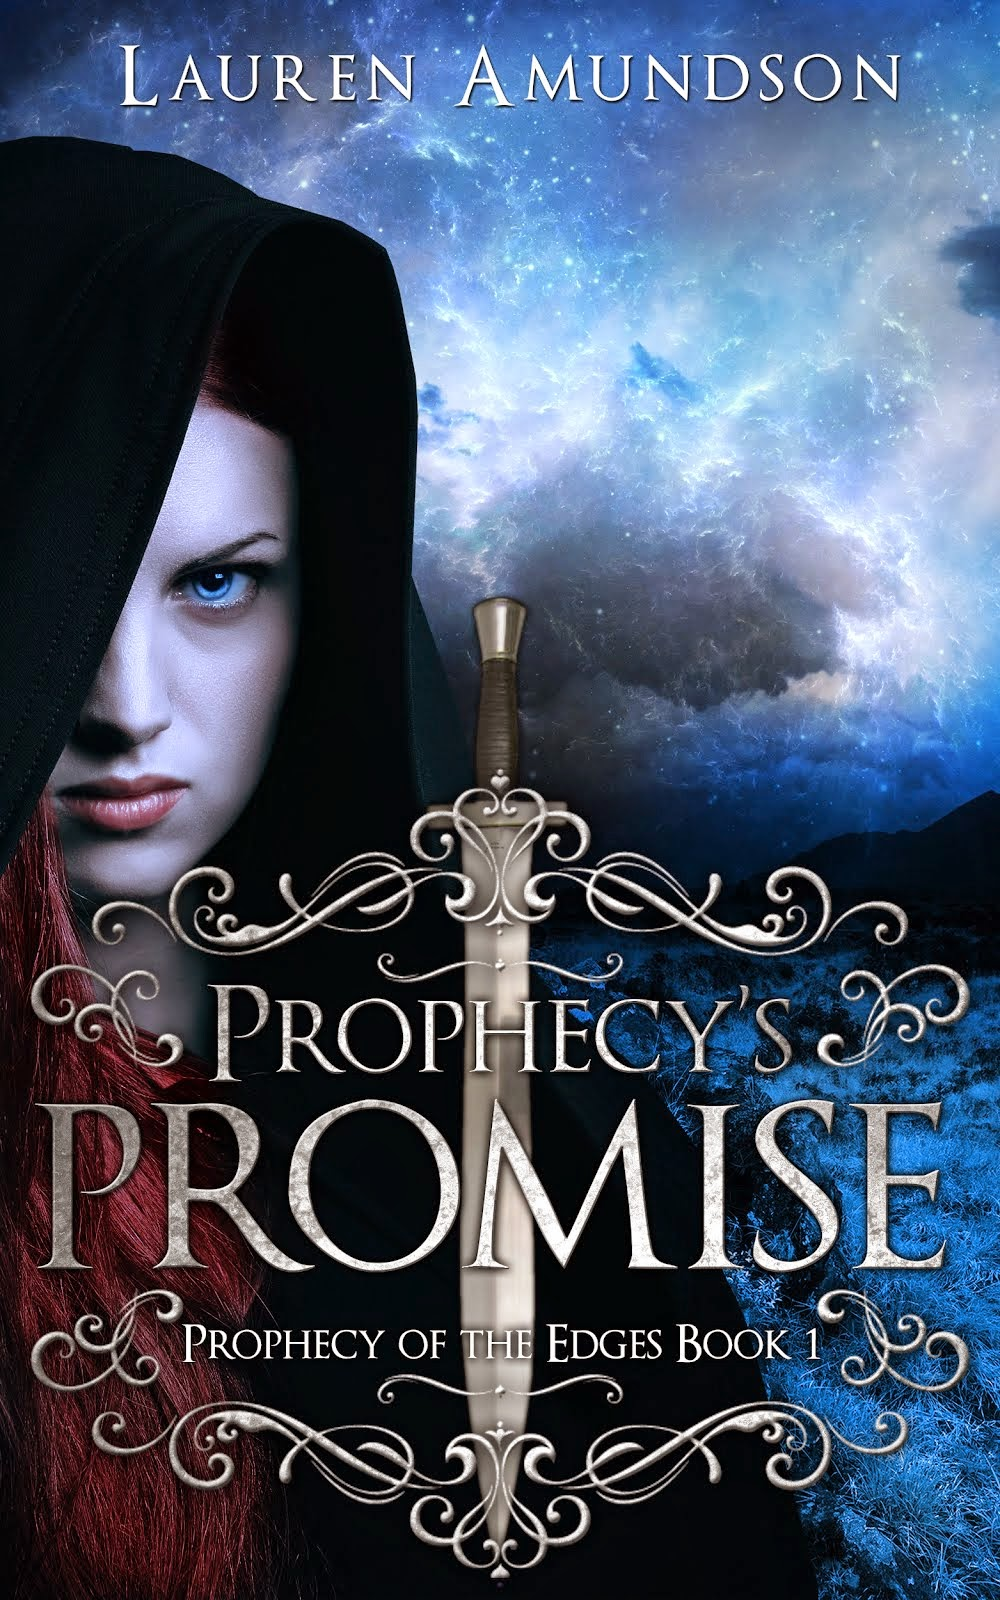 My Debut Novel - Prophecy's Promise